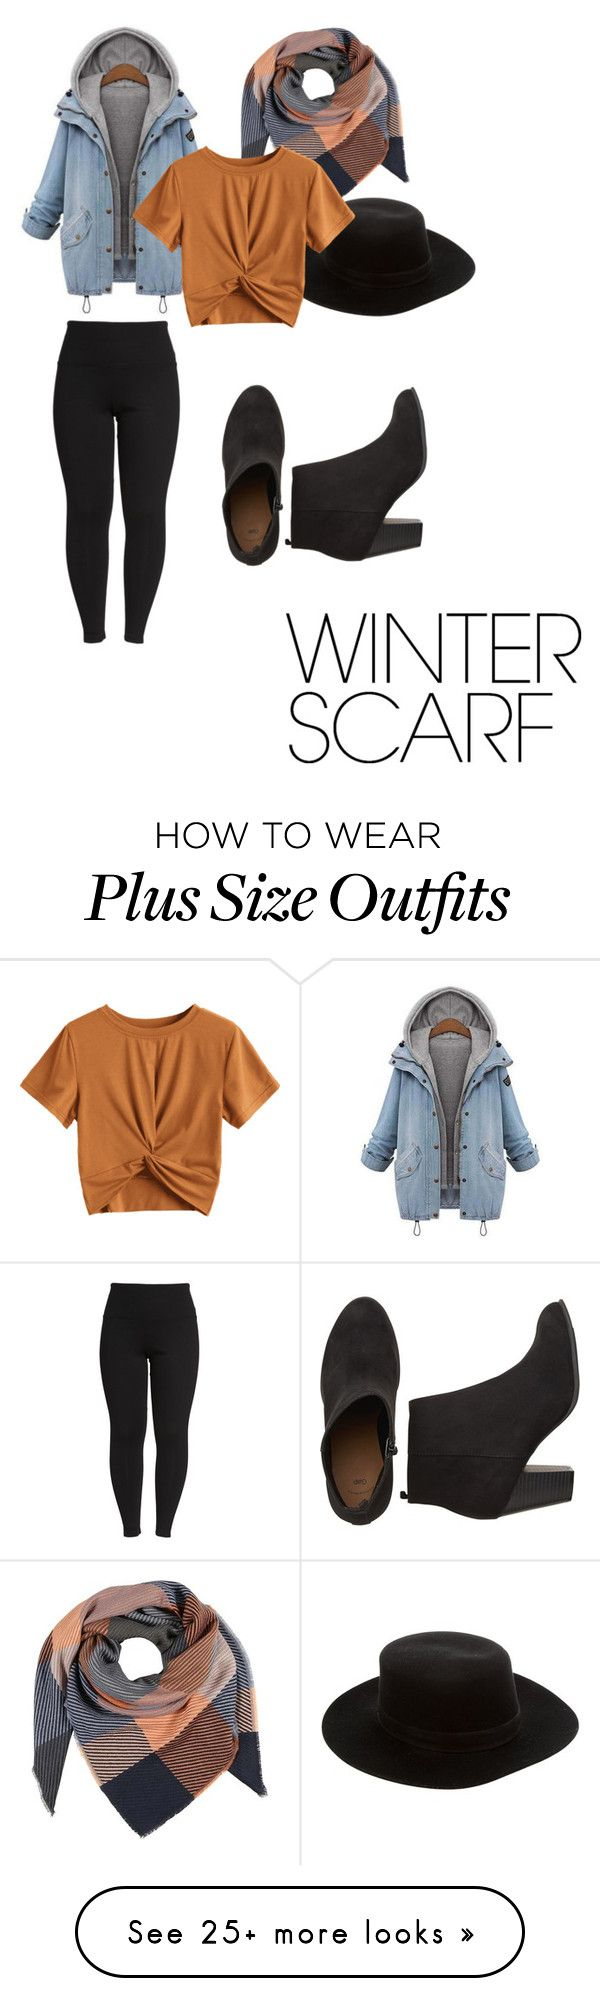 """""""Orangy"""" by francesadele on Polyvore featuring Lyssé Leggings, Janessa Leone, winterscarf and plus size clothing"""